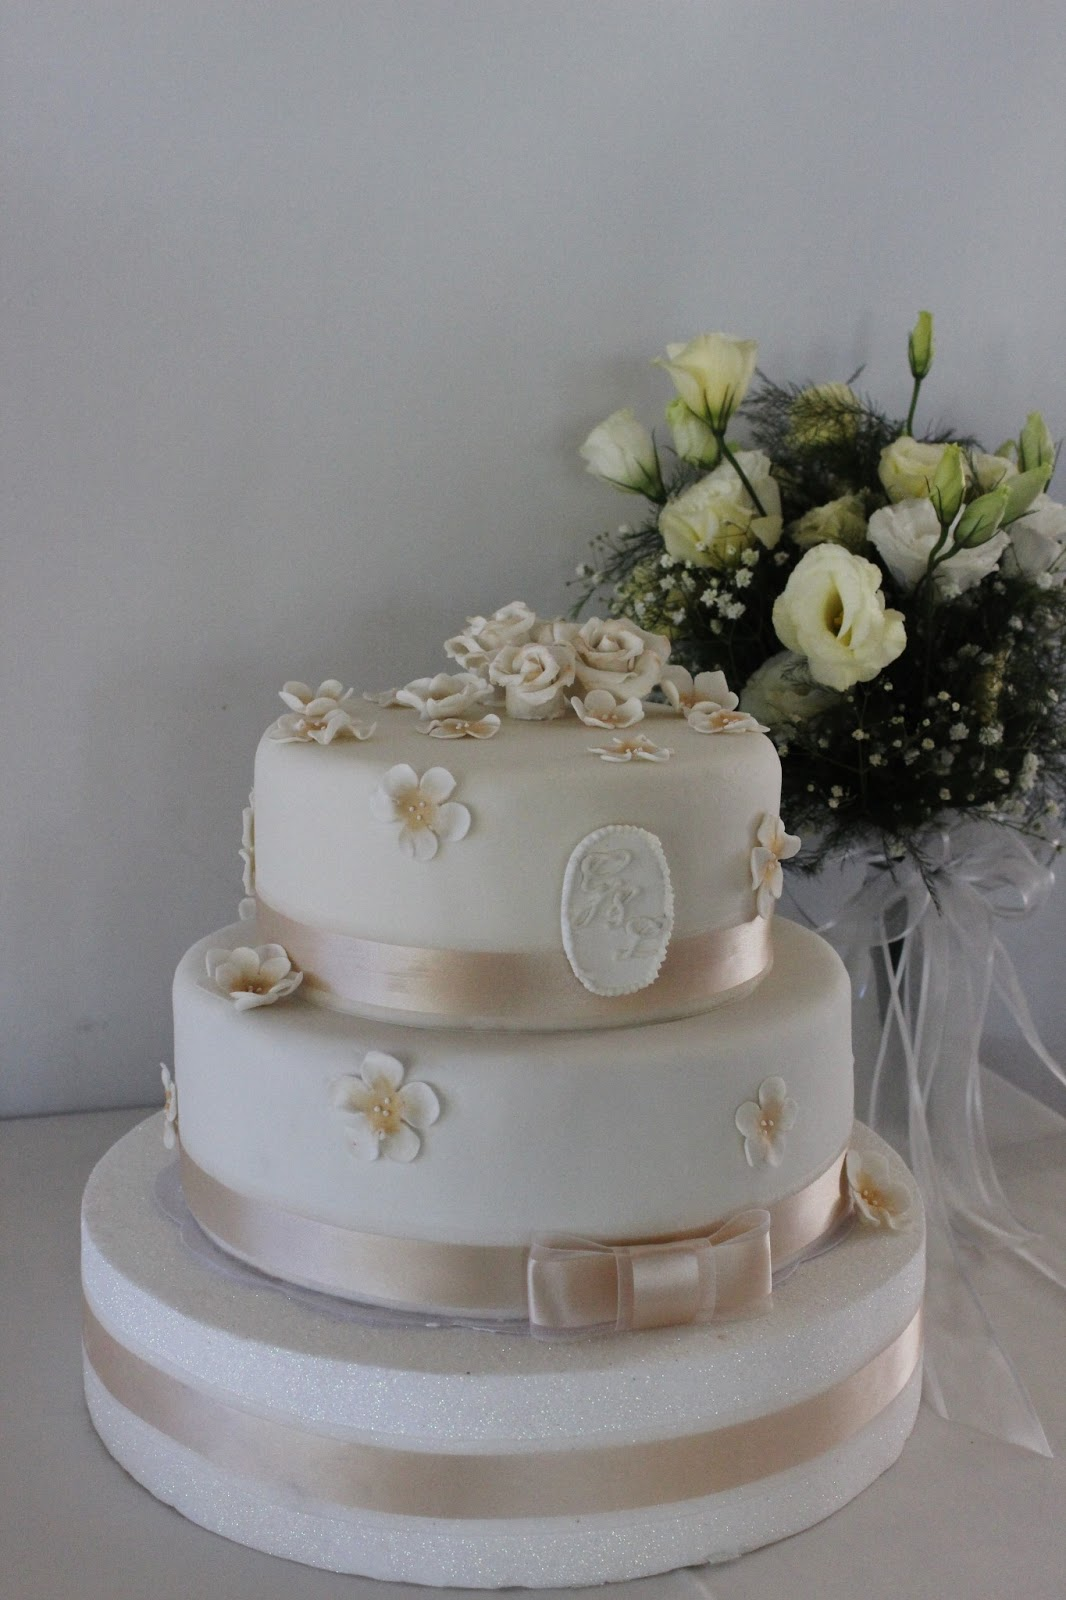 Artis Wedding Cake : Torta De Bodas Color Champagne Decorada Con Flores ...